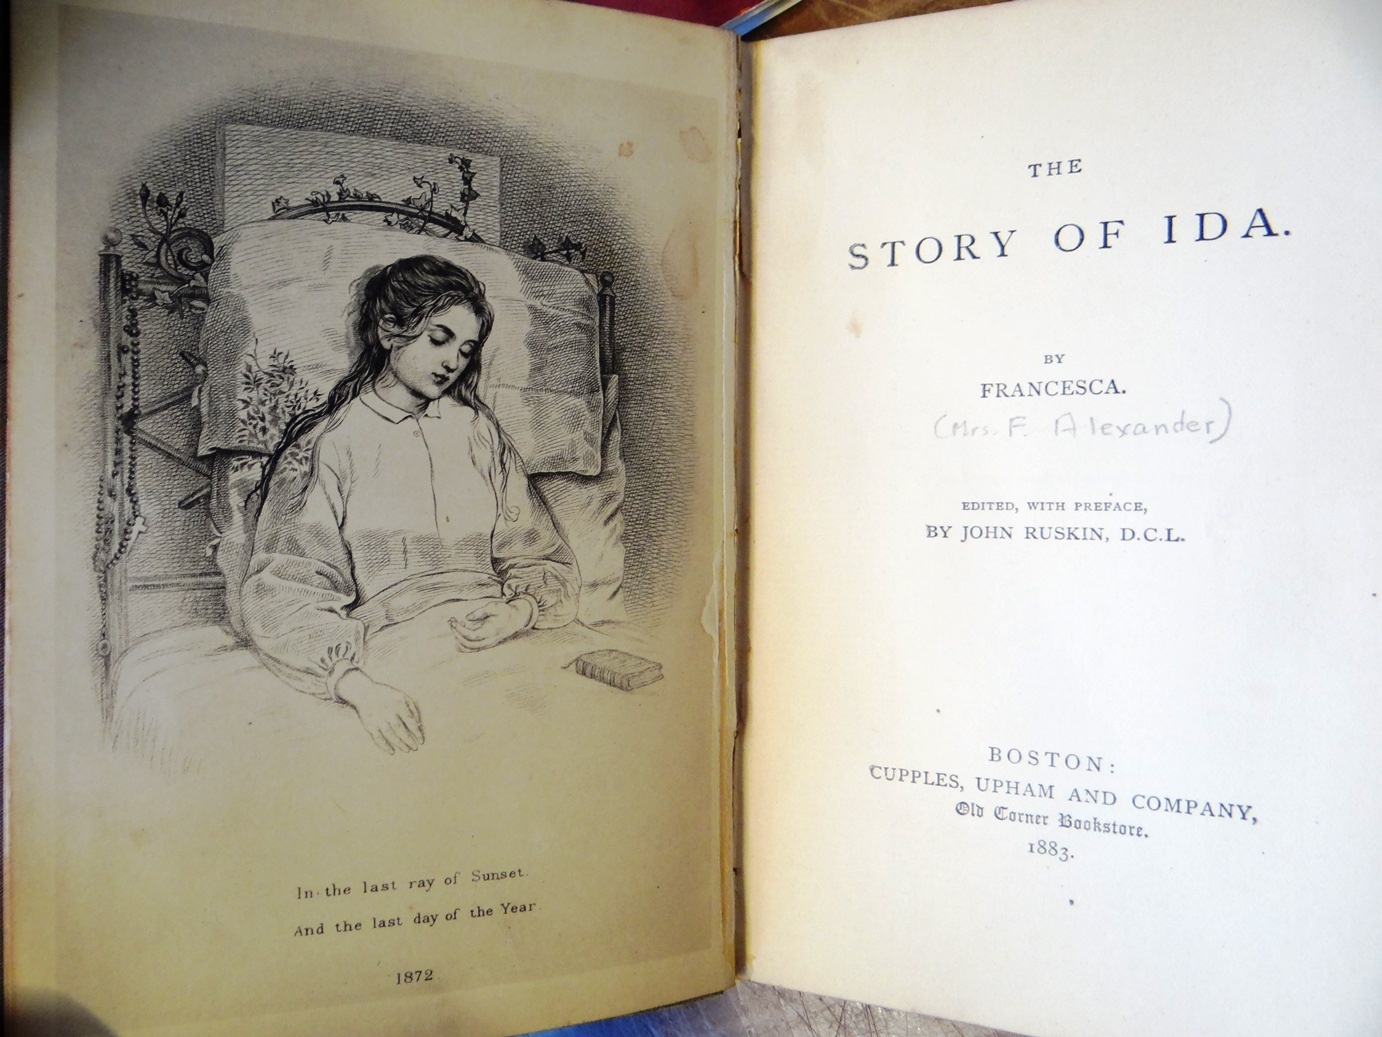 Image result for francesca drawing of story of ida